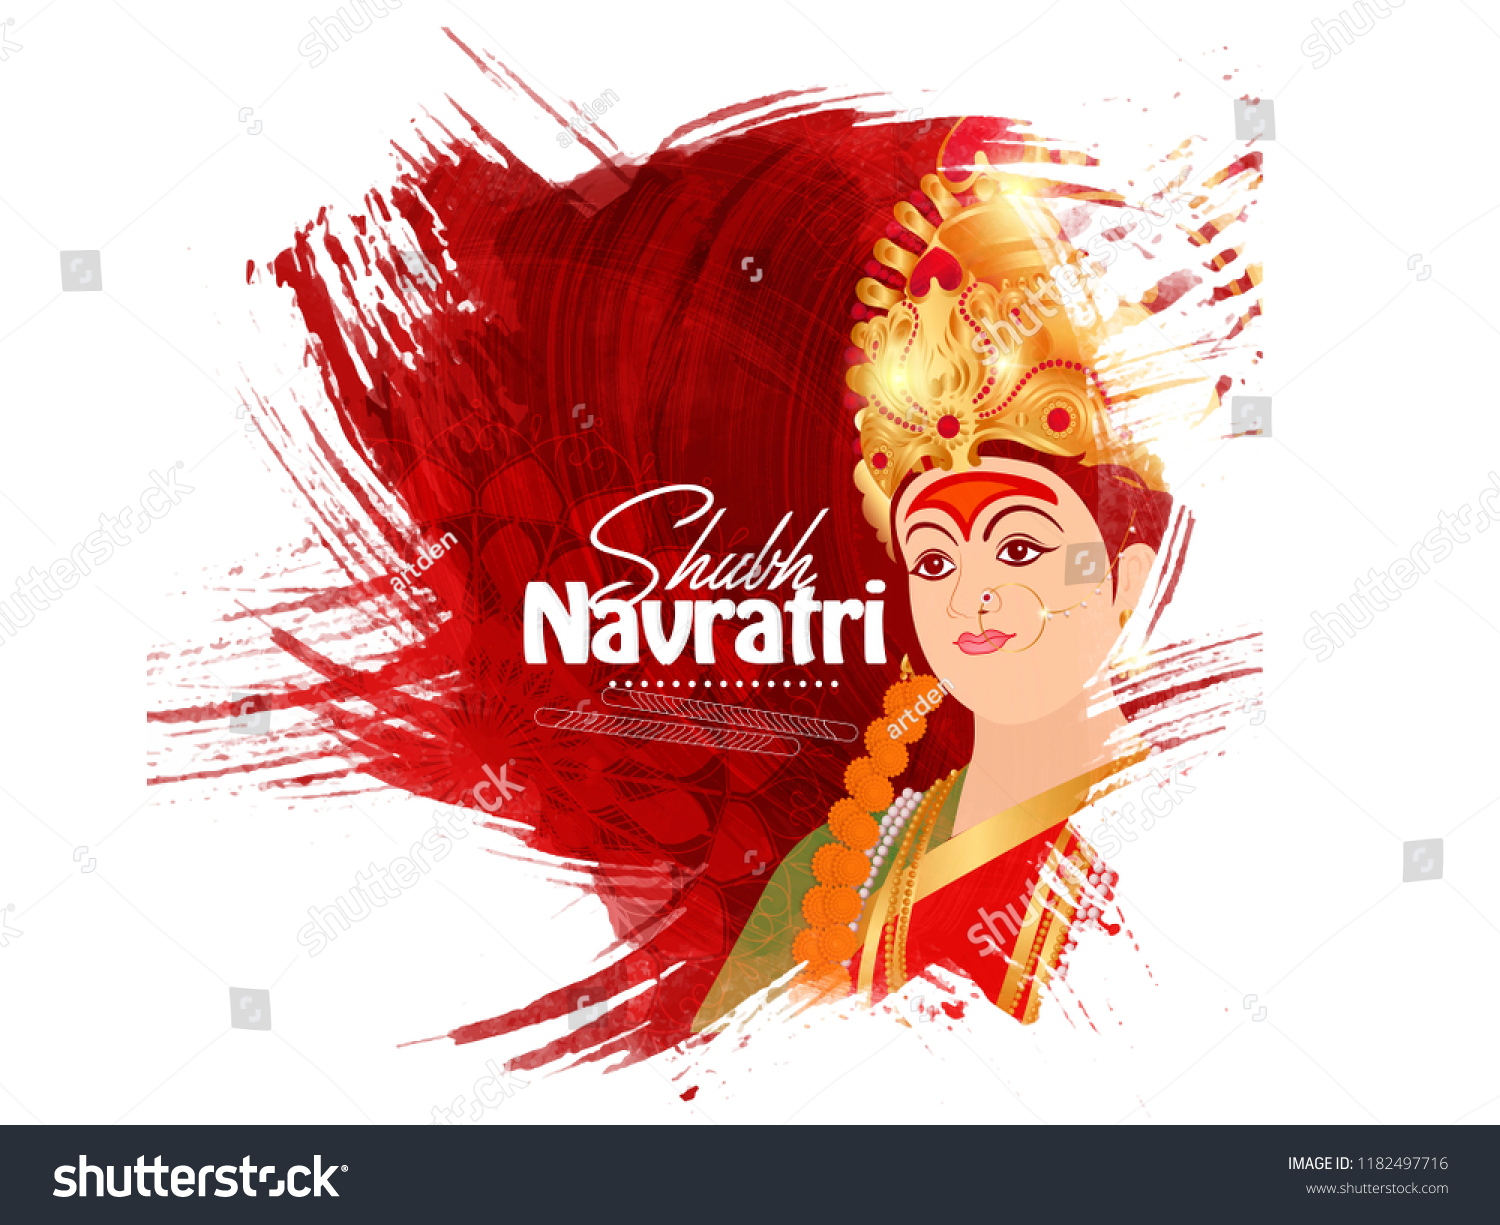 Illustration Of Happy Navratri greeting Card Design With Beautiful Maa Durga Face On Grunge background. #1182497716